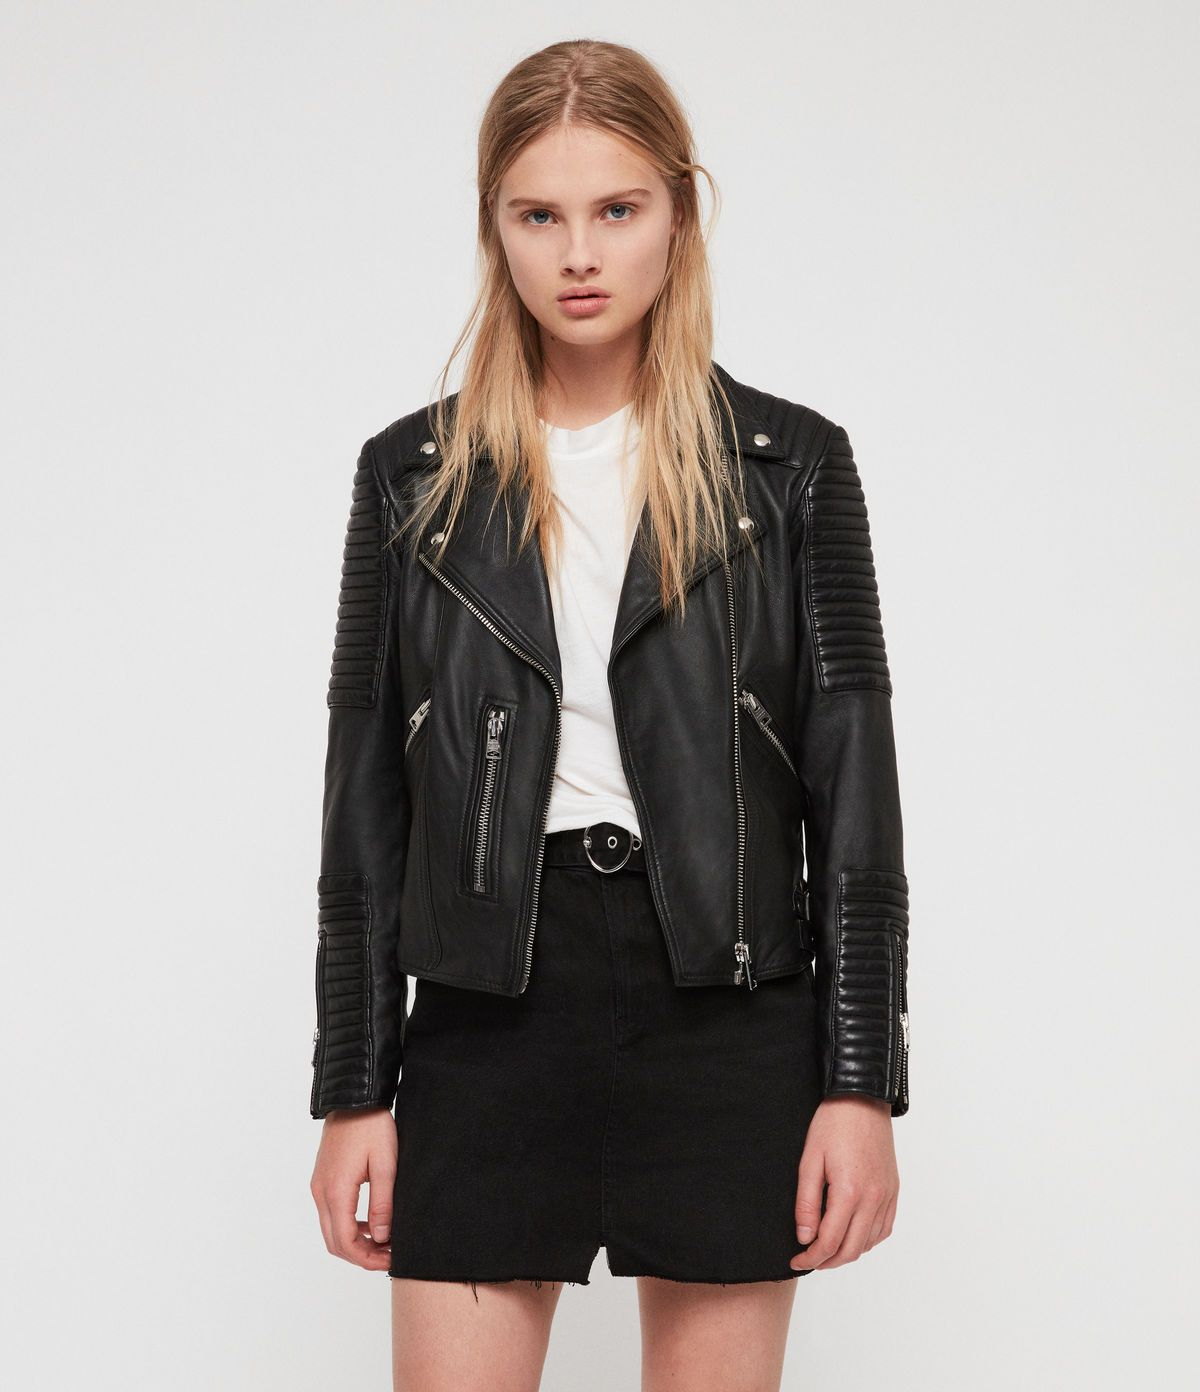 Estella Leather Biker Jacket Leather jackets women